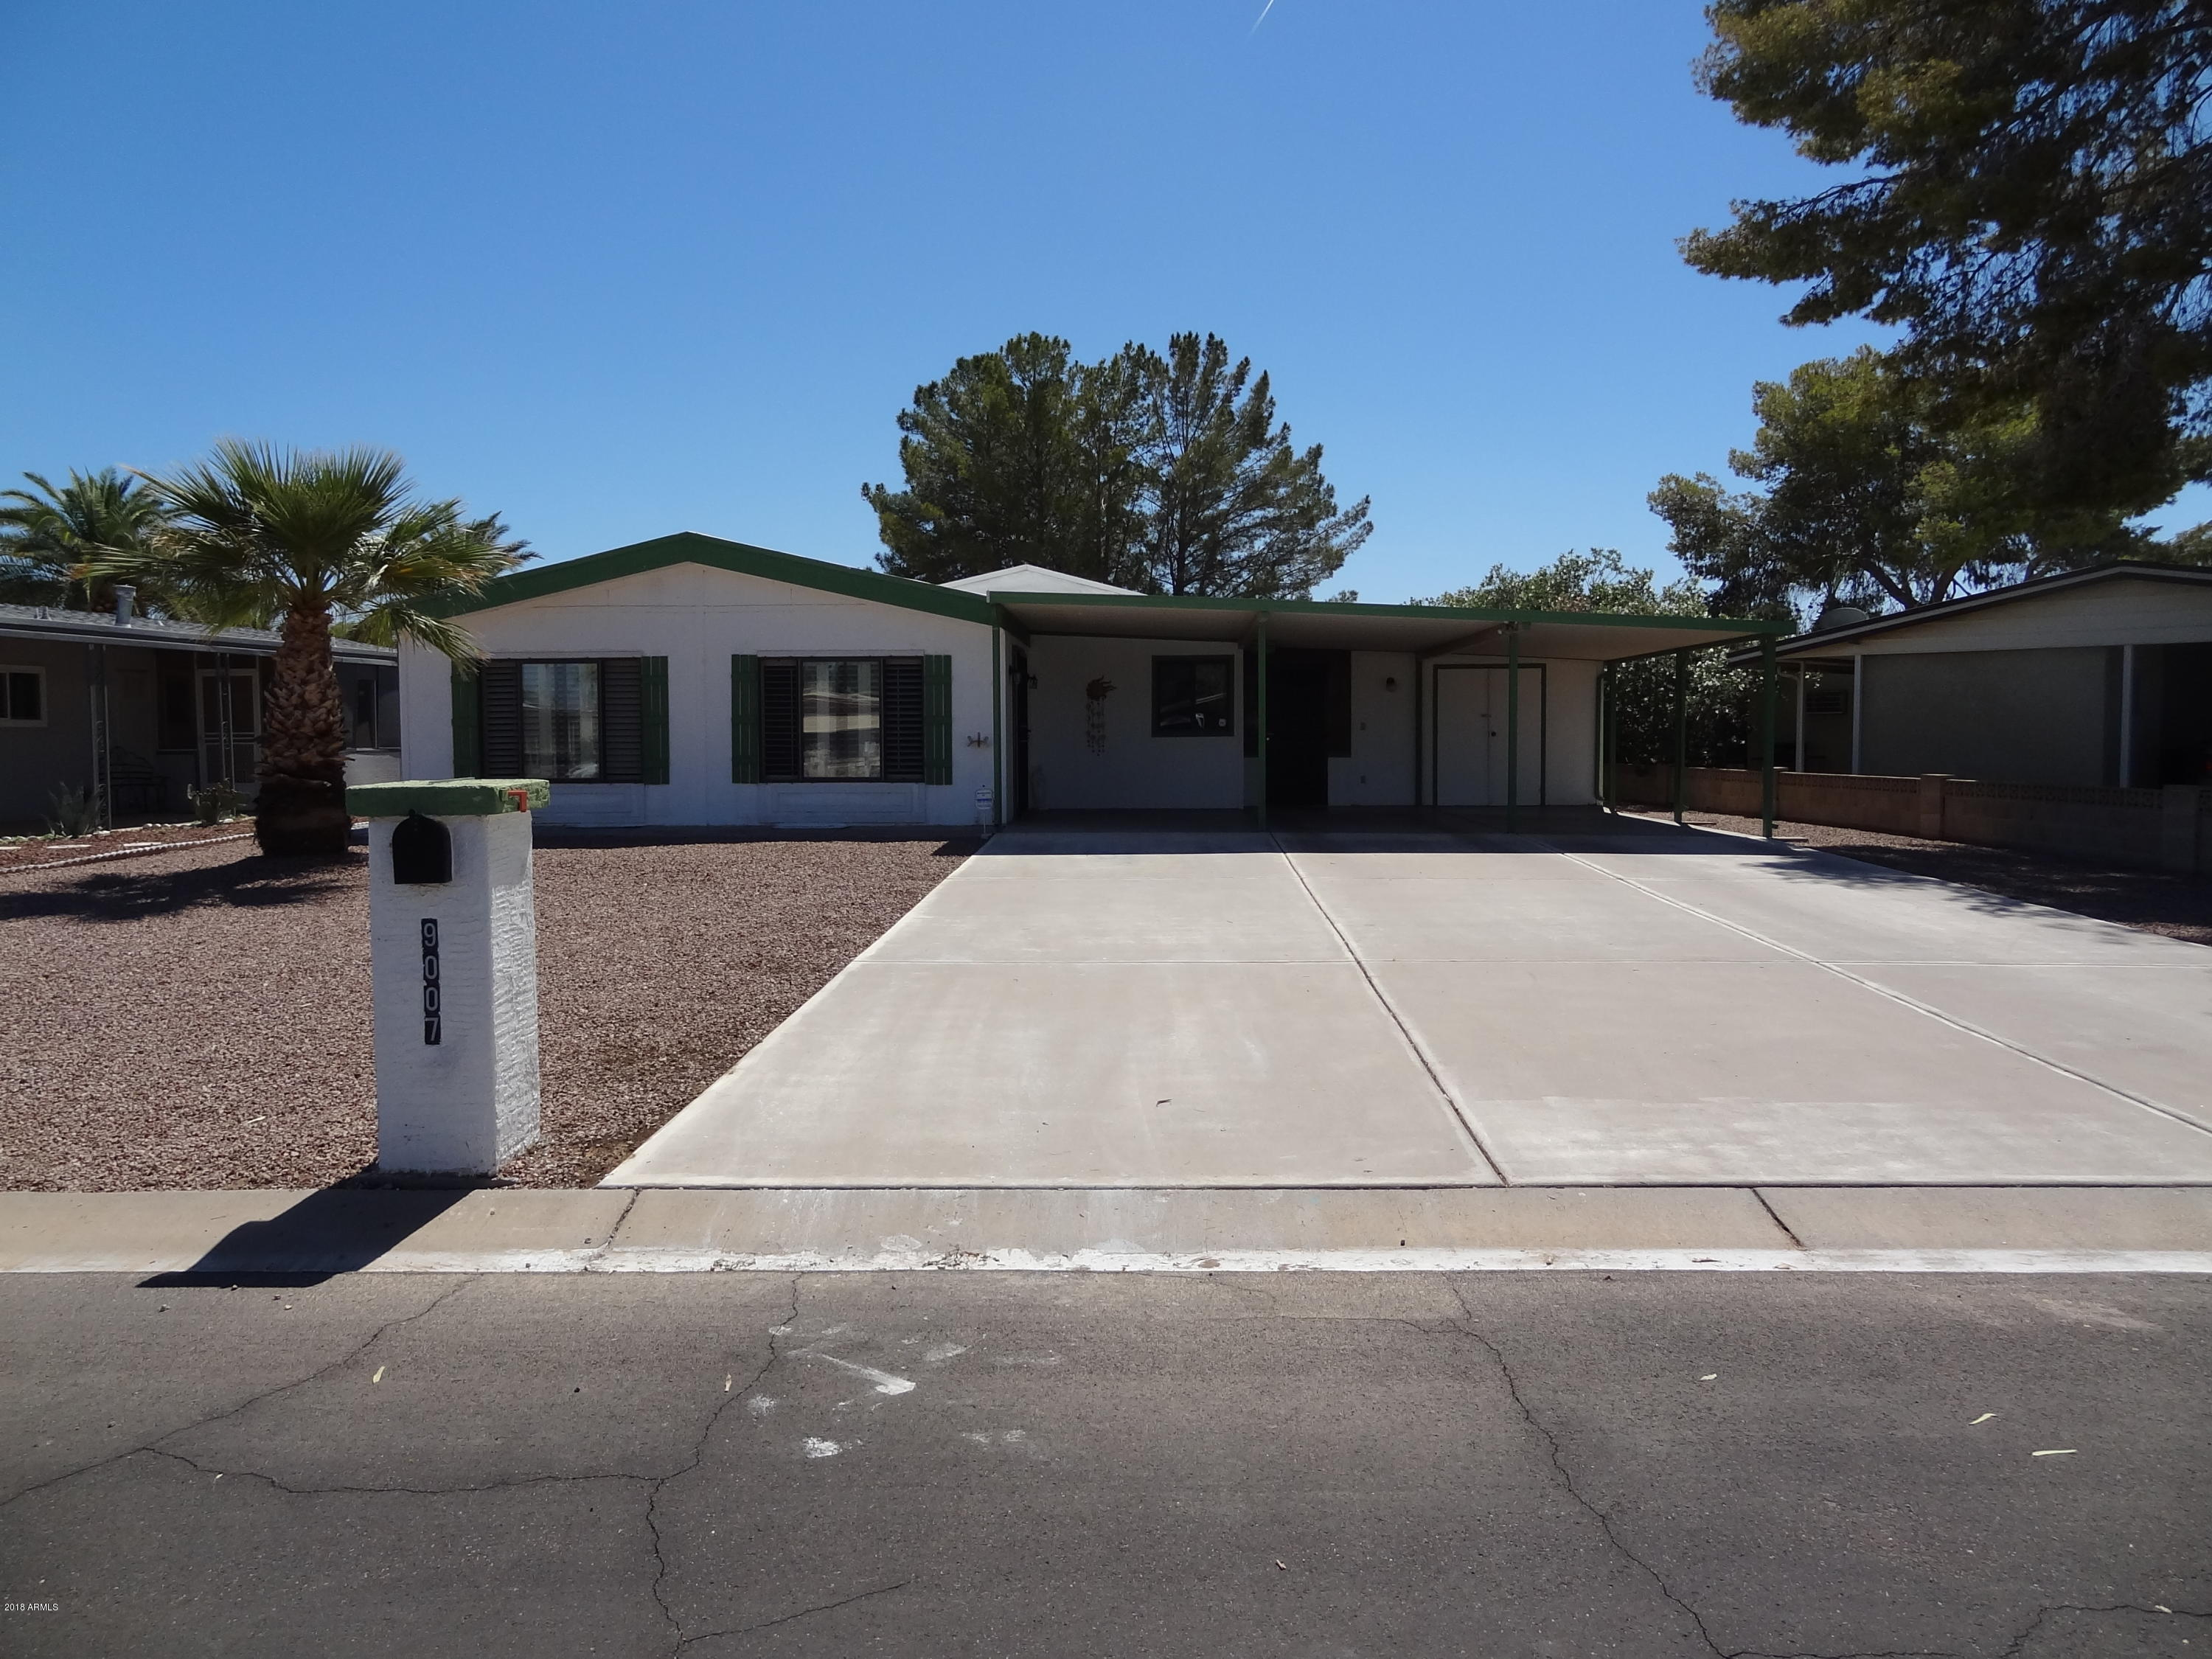 Photo for 9007 E Citrus Lane N, Sun Lakes, AZ 85248 (MLS # 5812544)